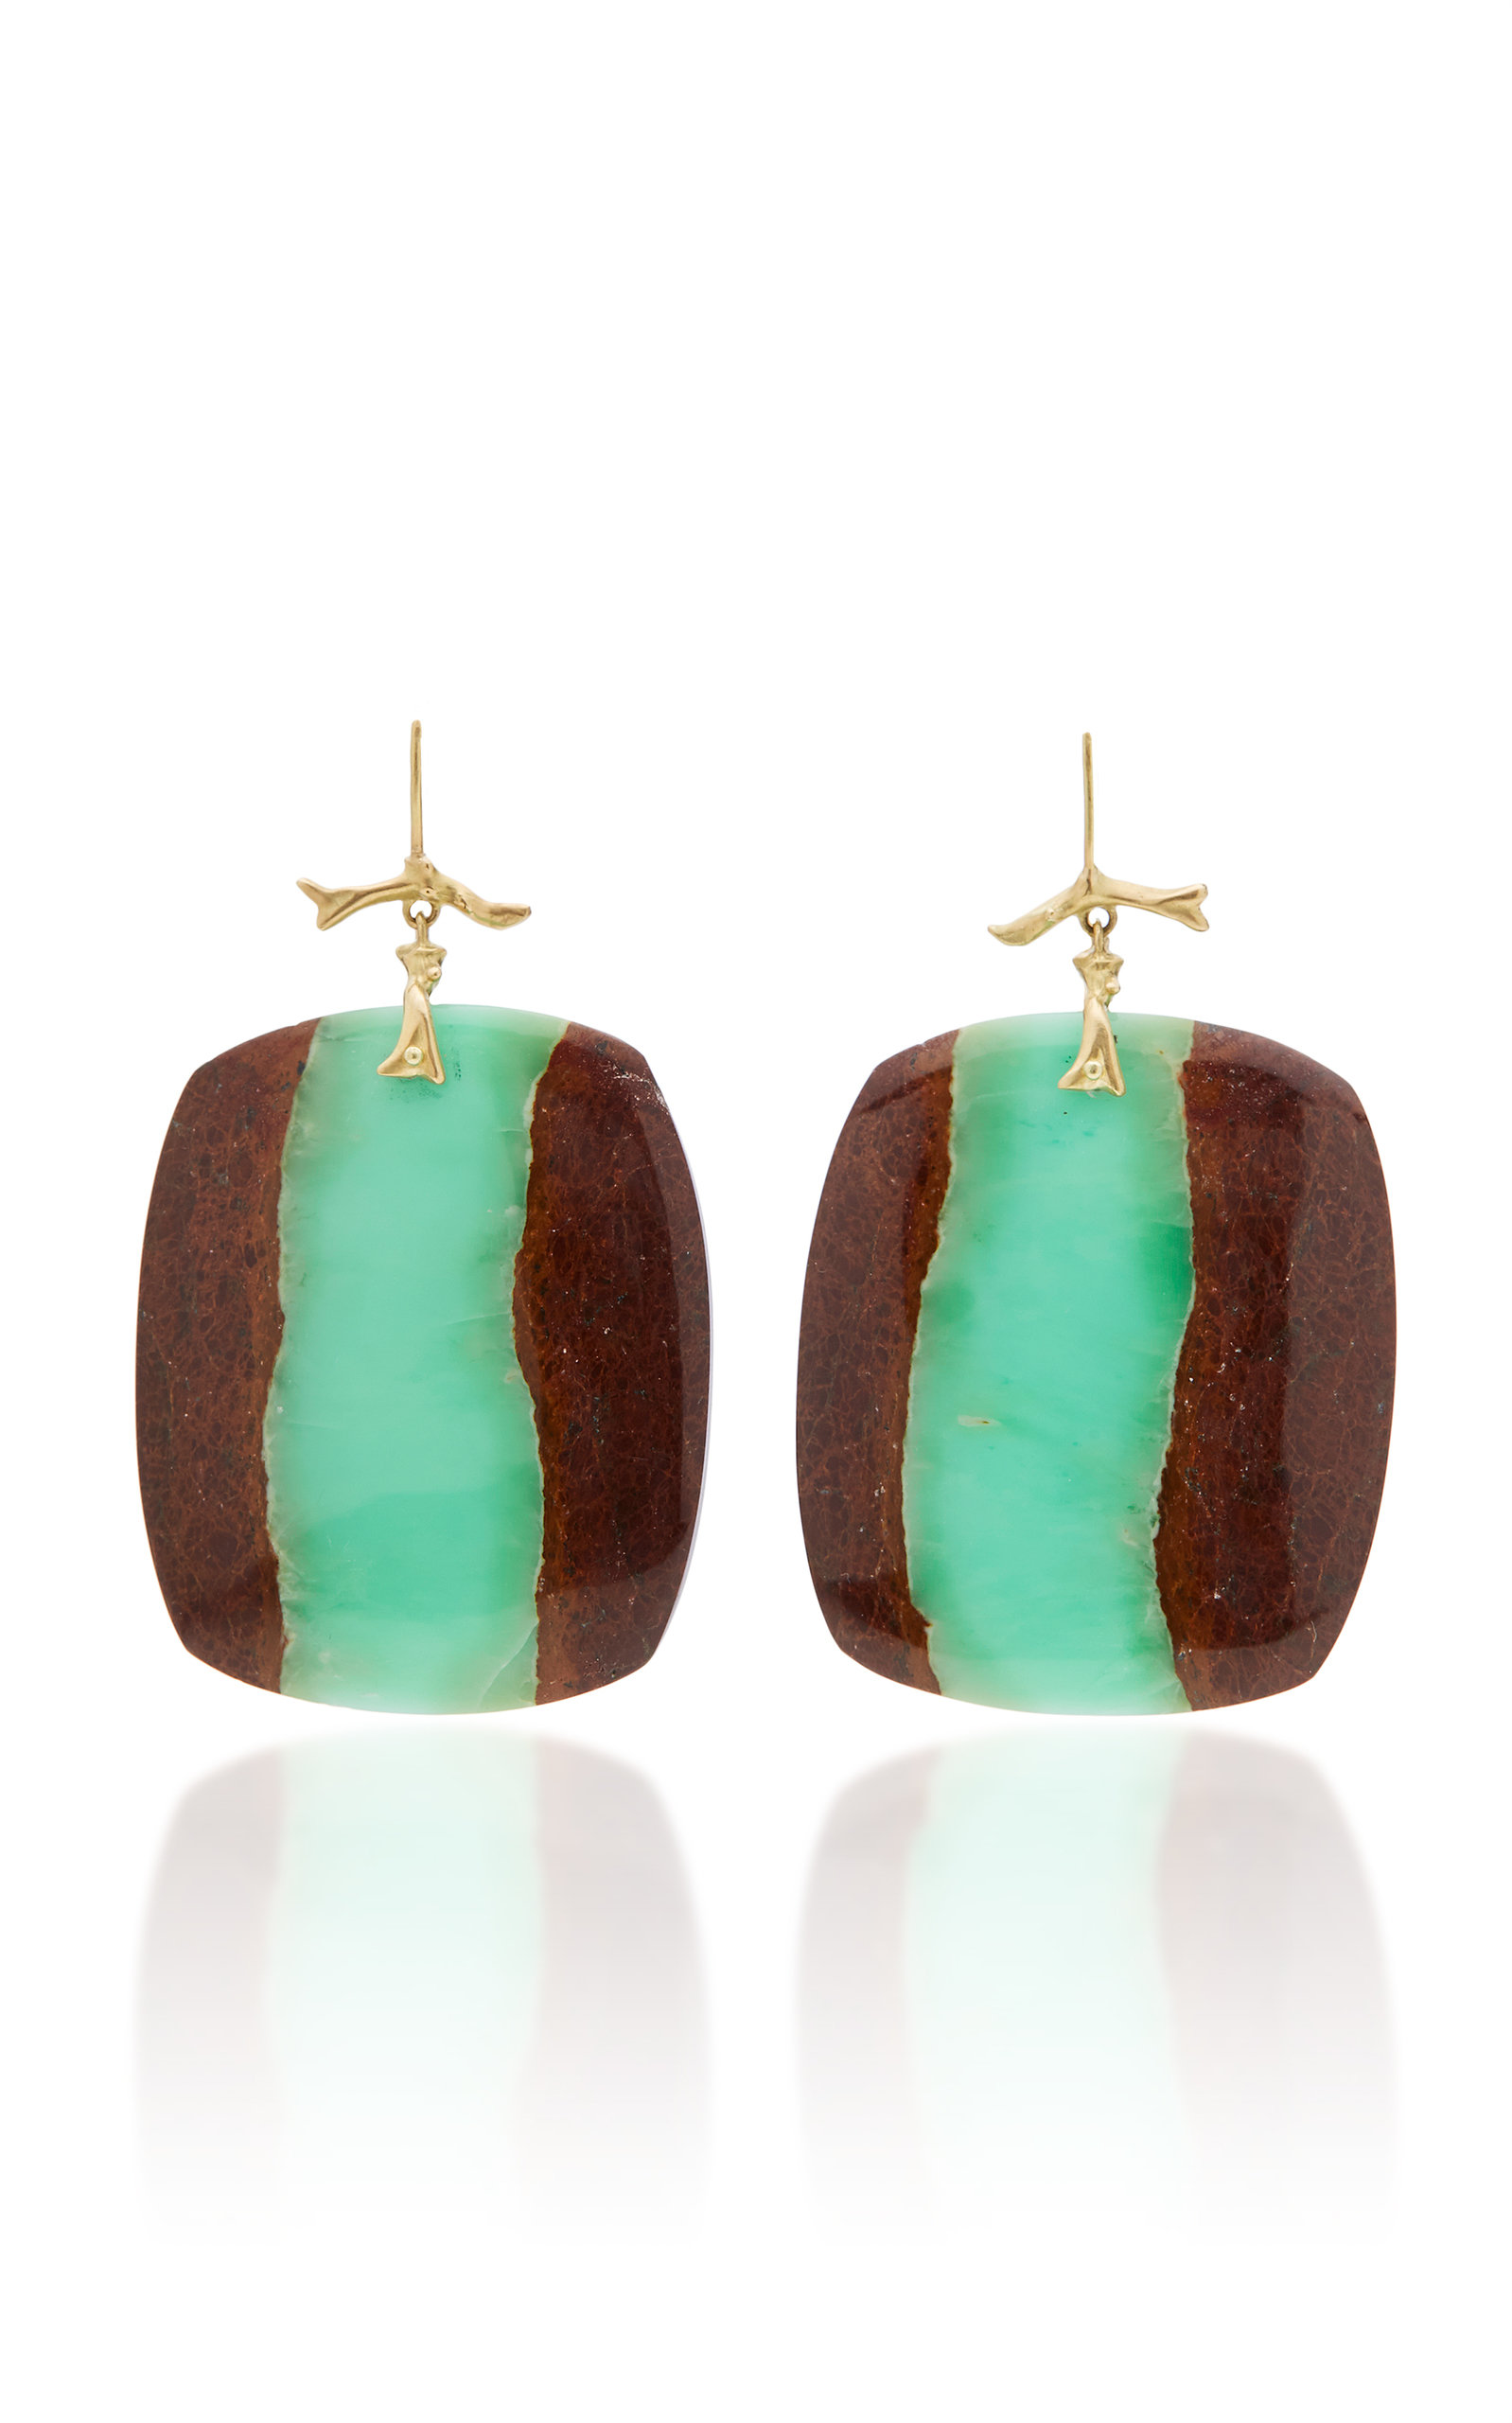 M'O EXCLUSIVE: ONE-OF-A-KIND CHRYSOPRASE MATRIX EARRINGS